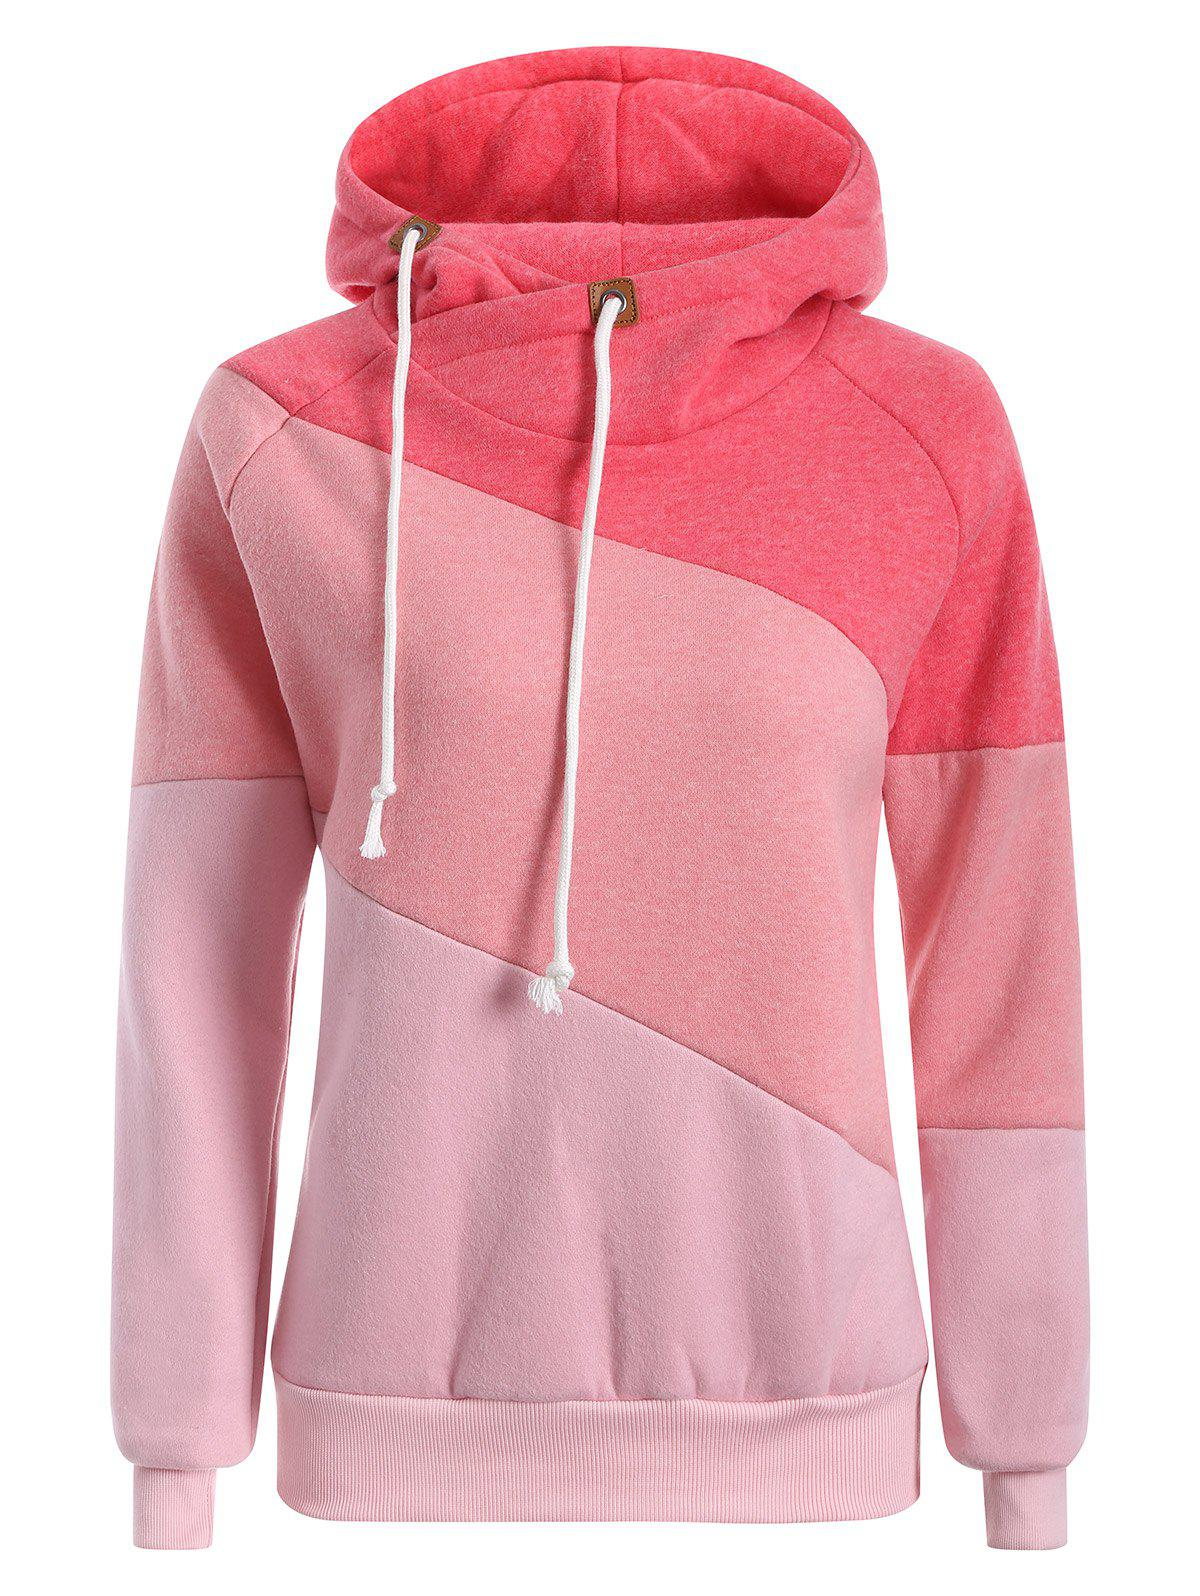 Raglan Sleeve Drawstring Color Panel HoodieWomen<br><br><br>Size: 2XL<br>Color: PINK